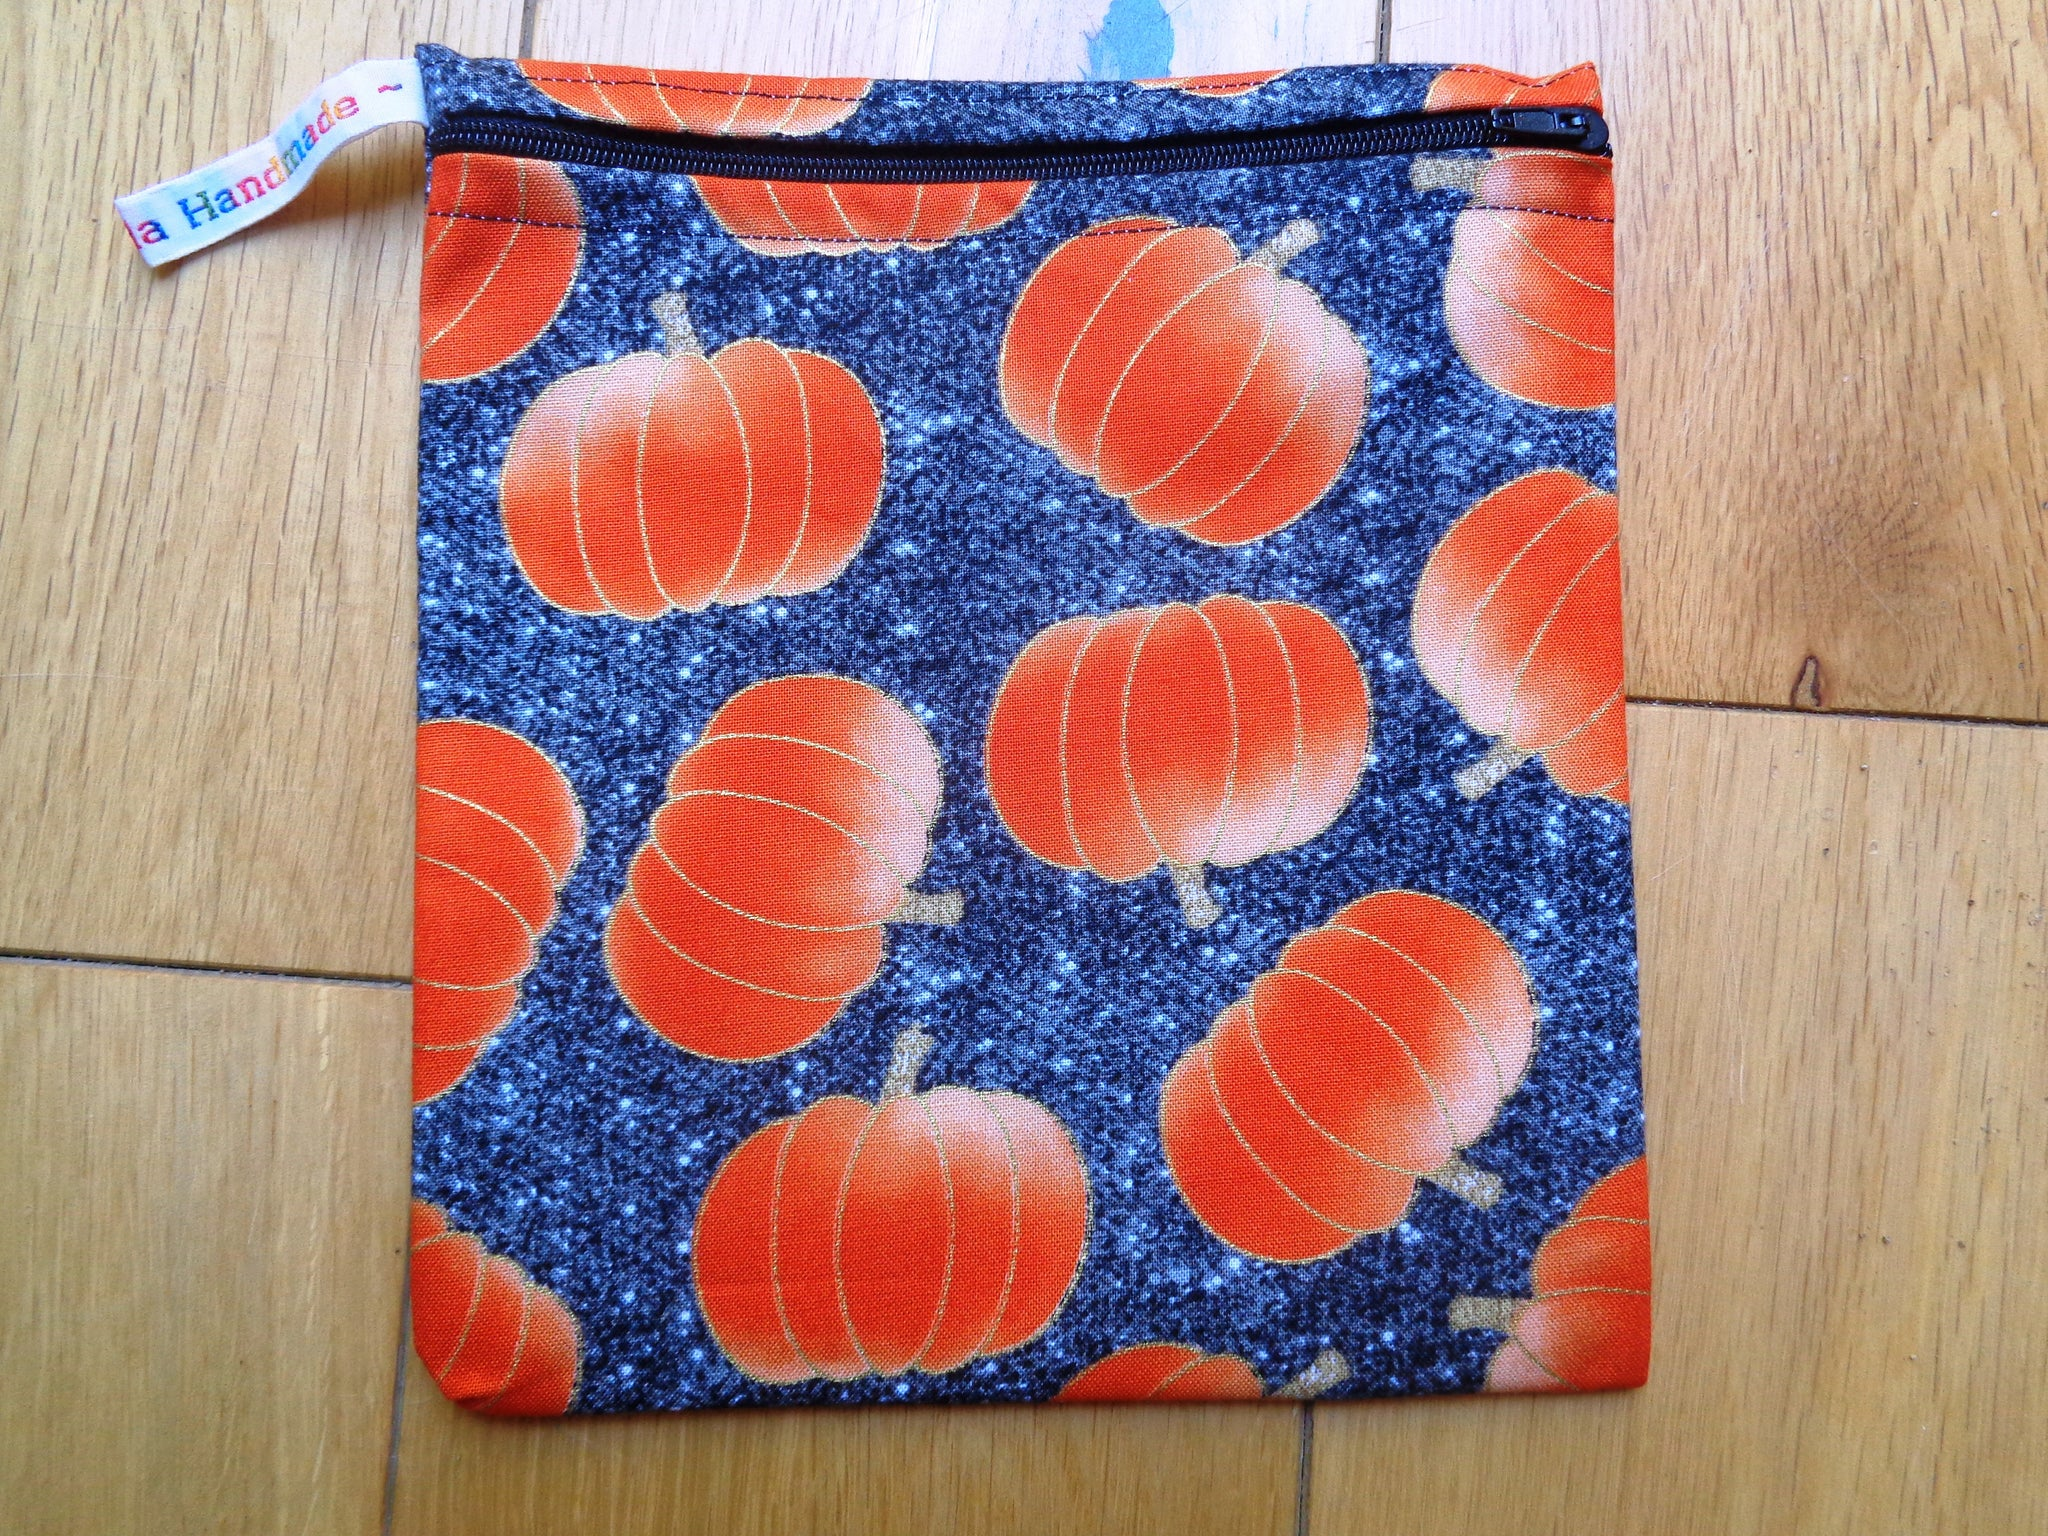 Midnight Pumpkin Medium Poppins Pouch Washable Sandwich Bag - Alt. to Wax Wrap